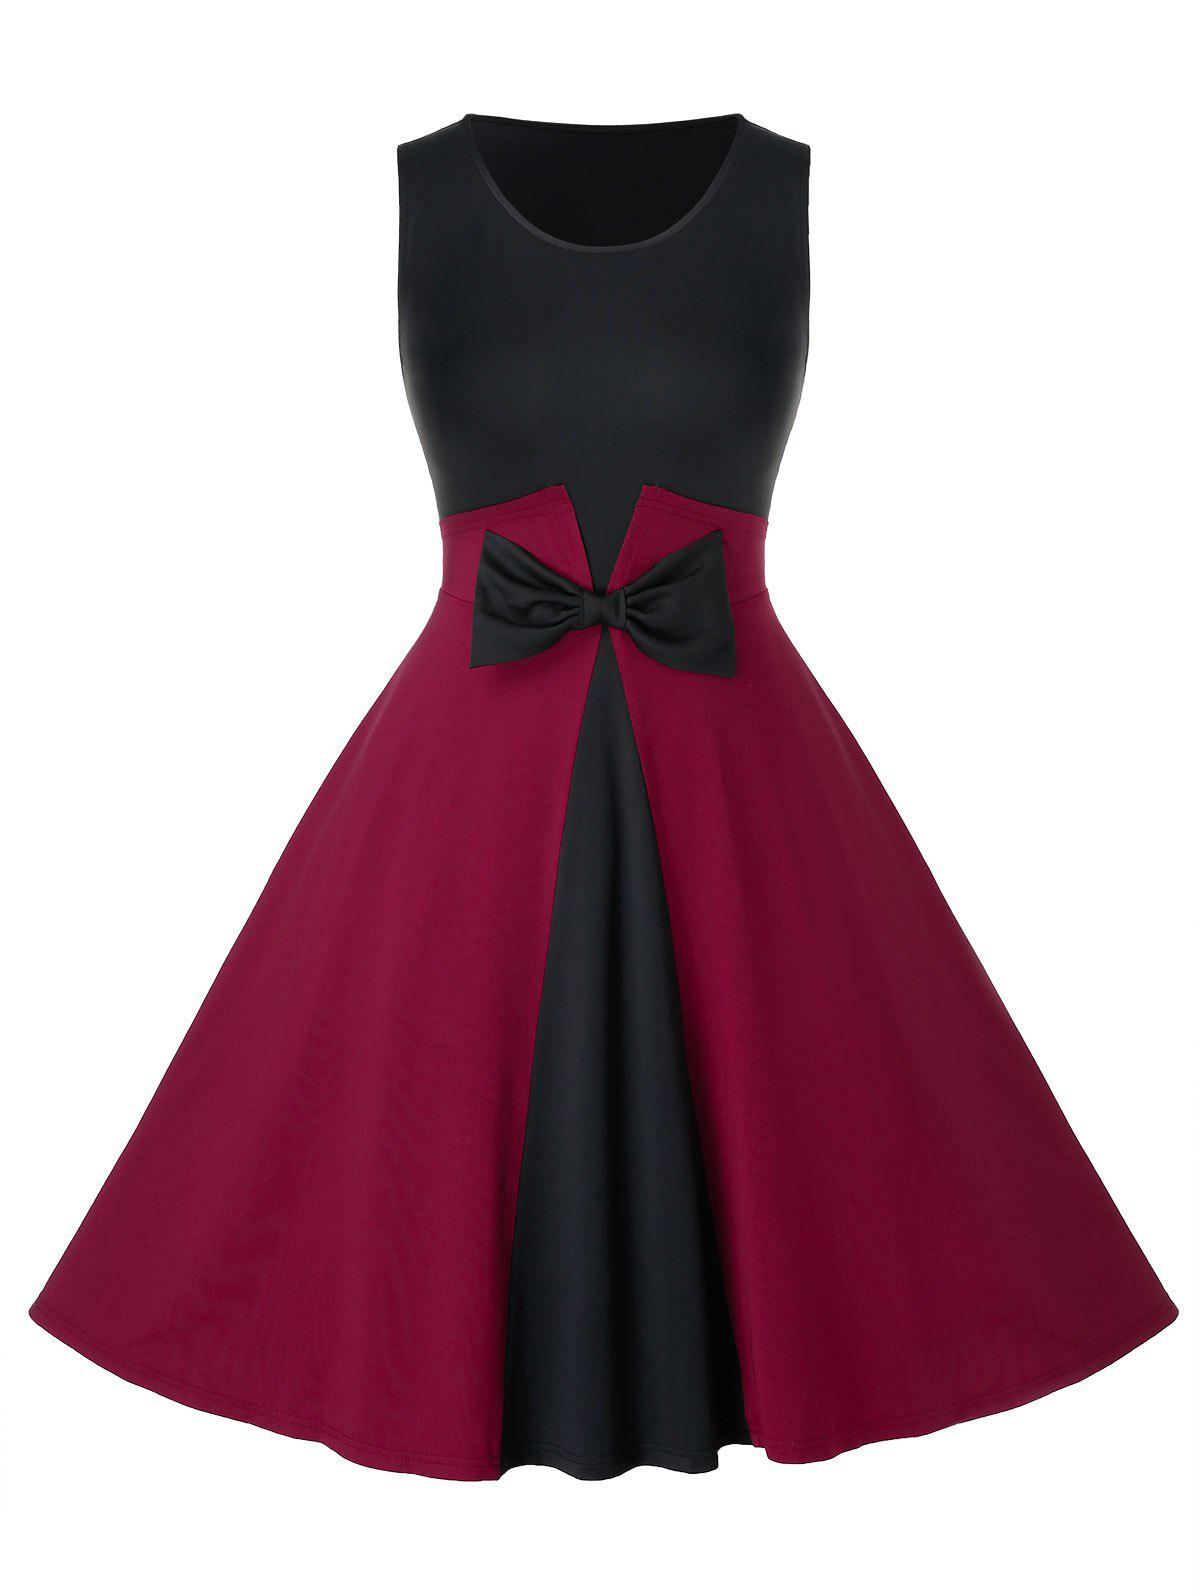 Plus Size Vintage bowknot Colorblock Dress Swing Noir 5X